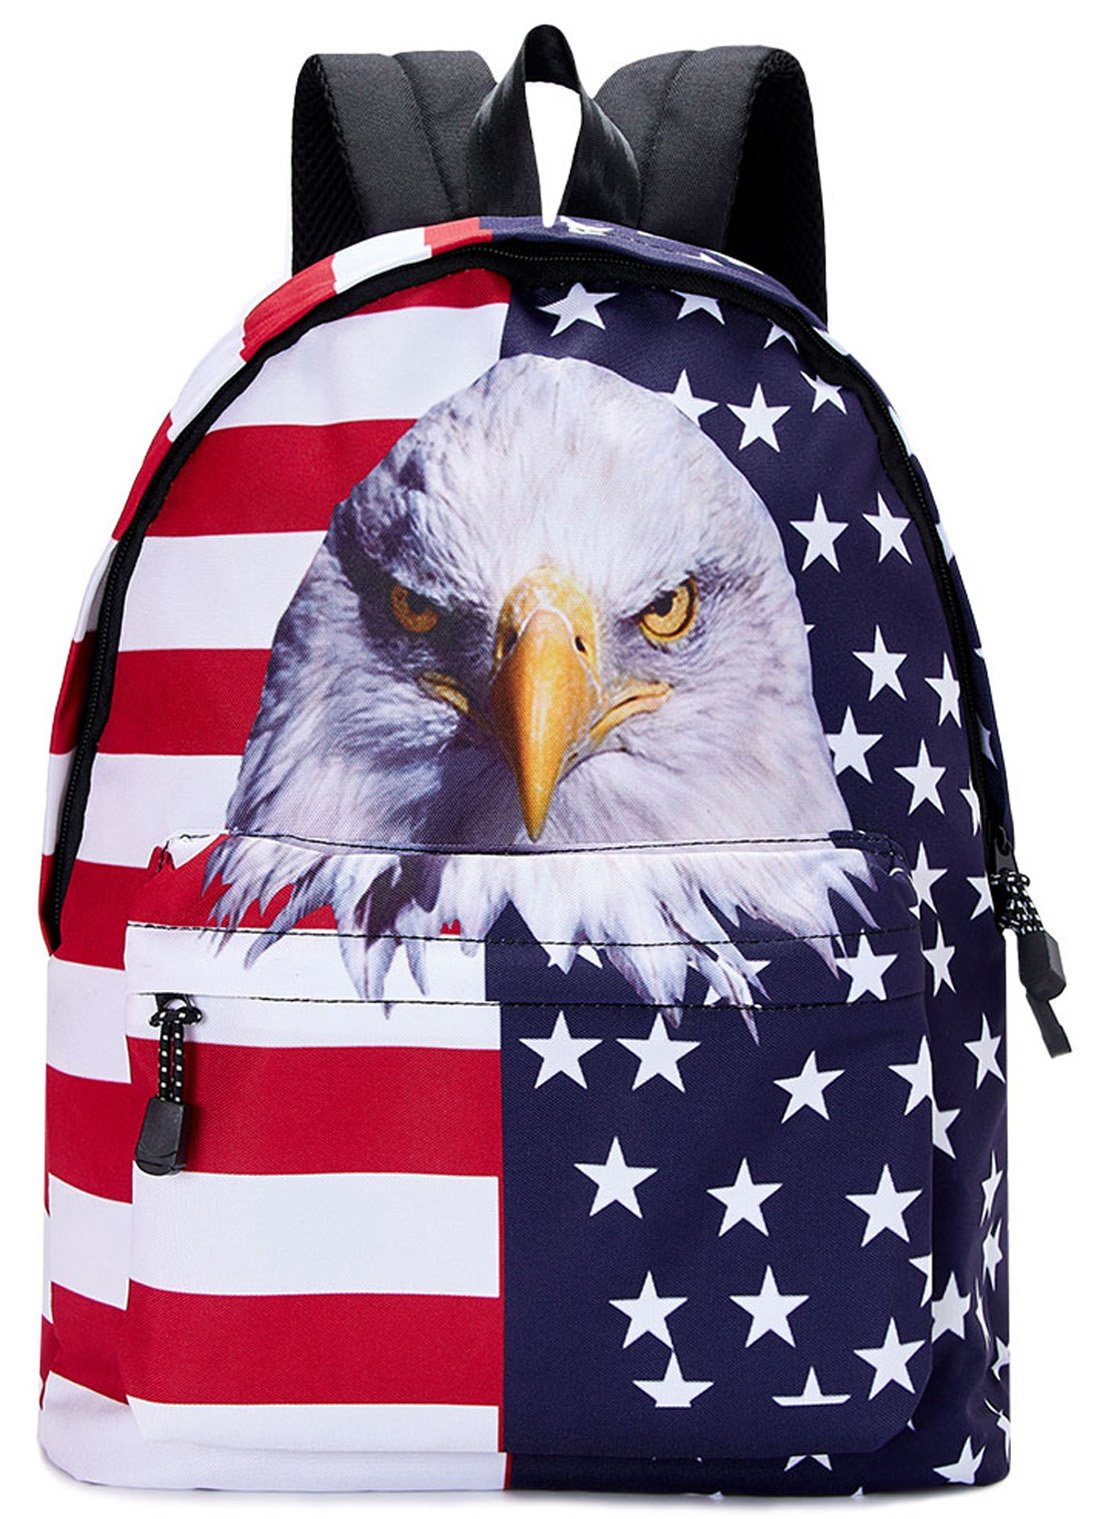 Kids American Eagle Flag Backpack Hiking Backpack Daypack for Outdoor Camping